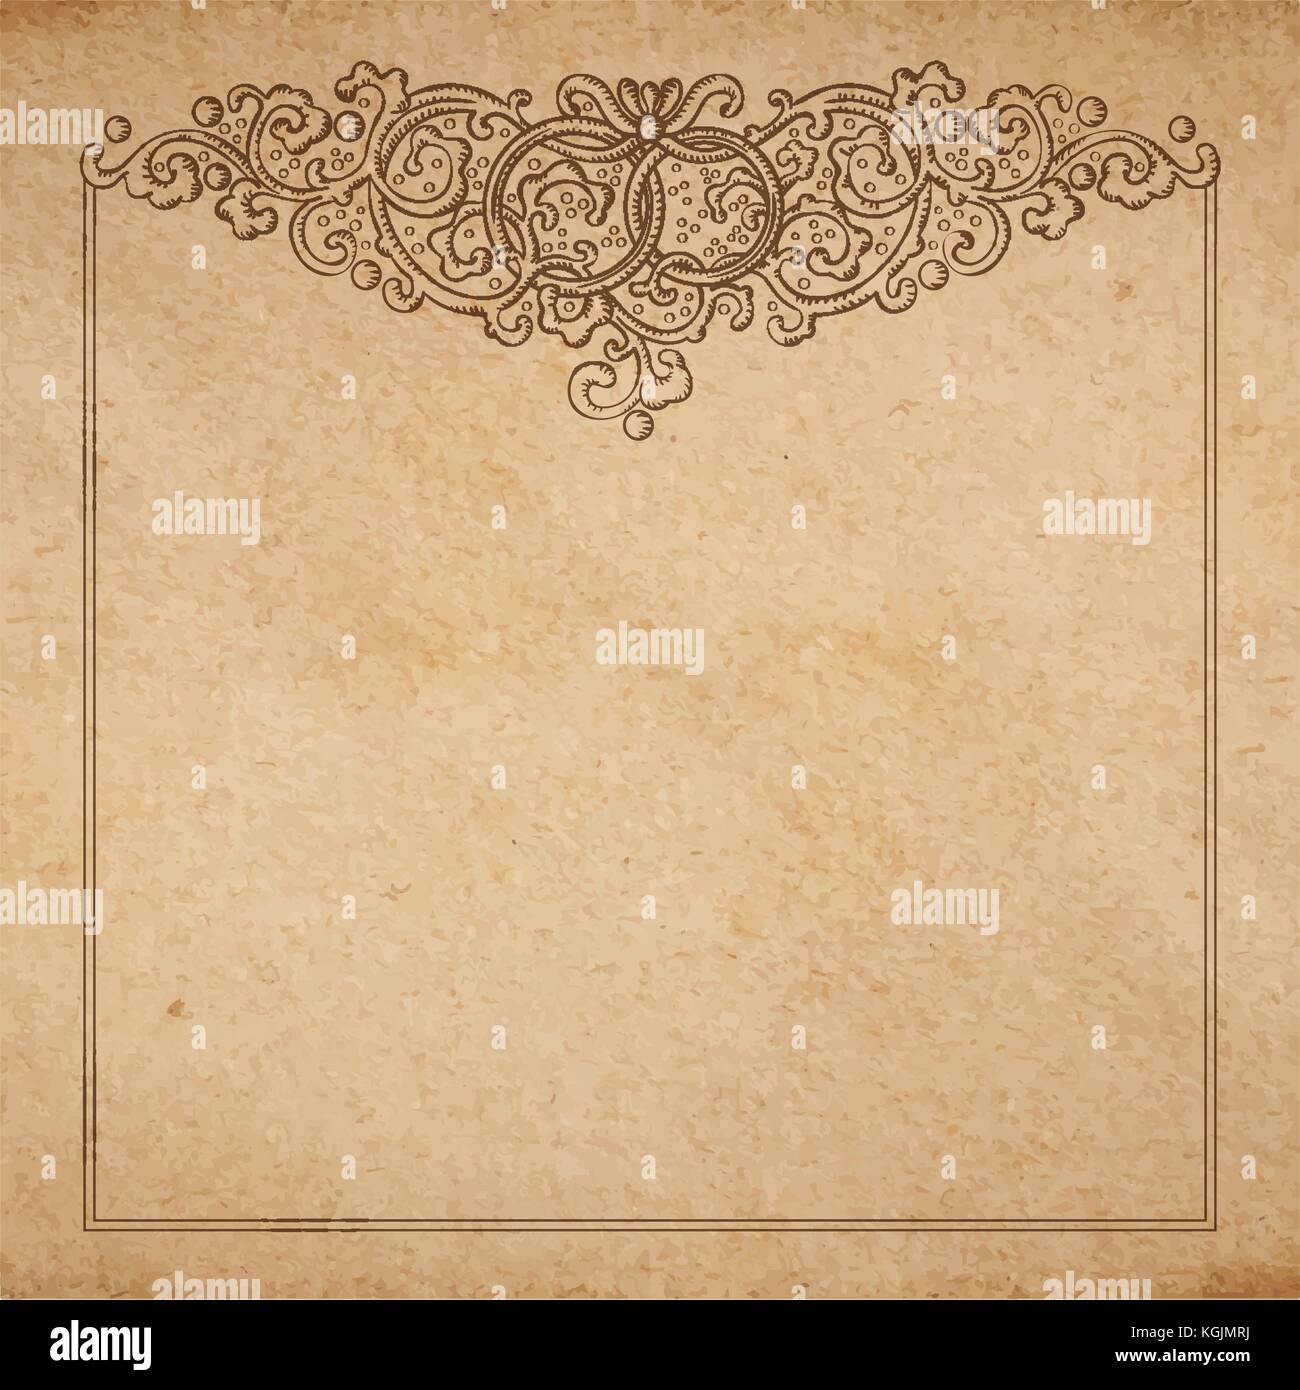 Vintage old paper texture with vector vignette with Medieval ornament, hand drawn floral decorative frame with wedding - Stock Image